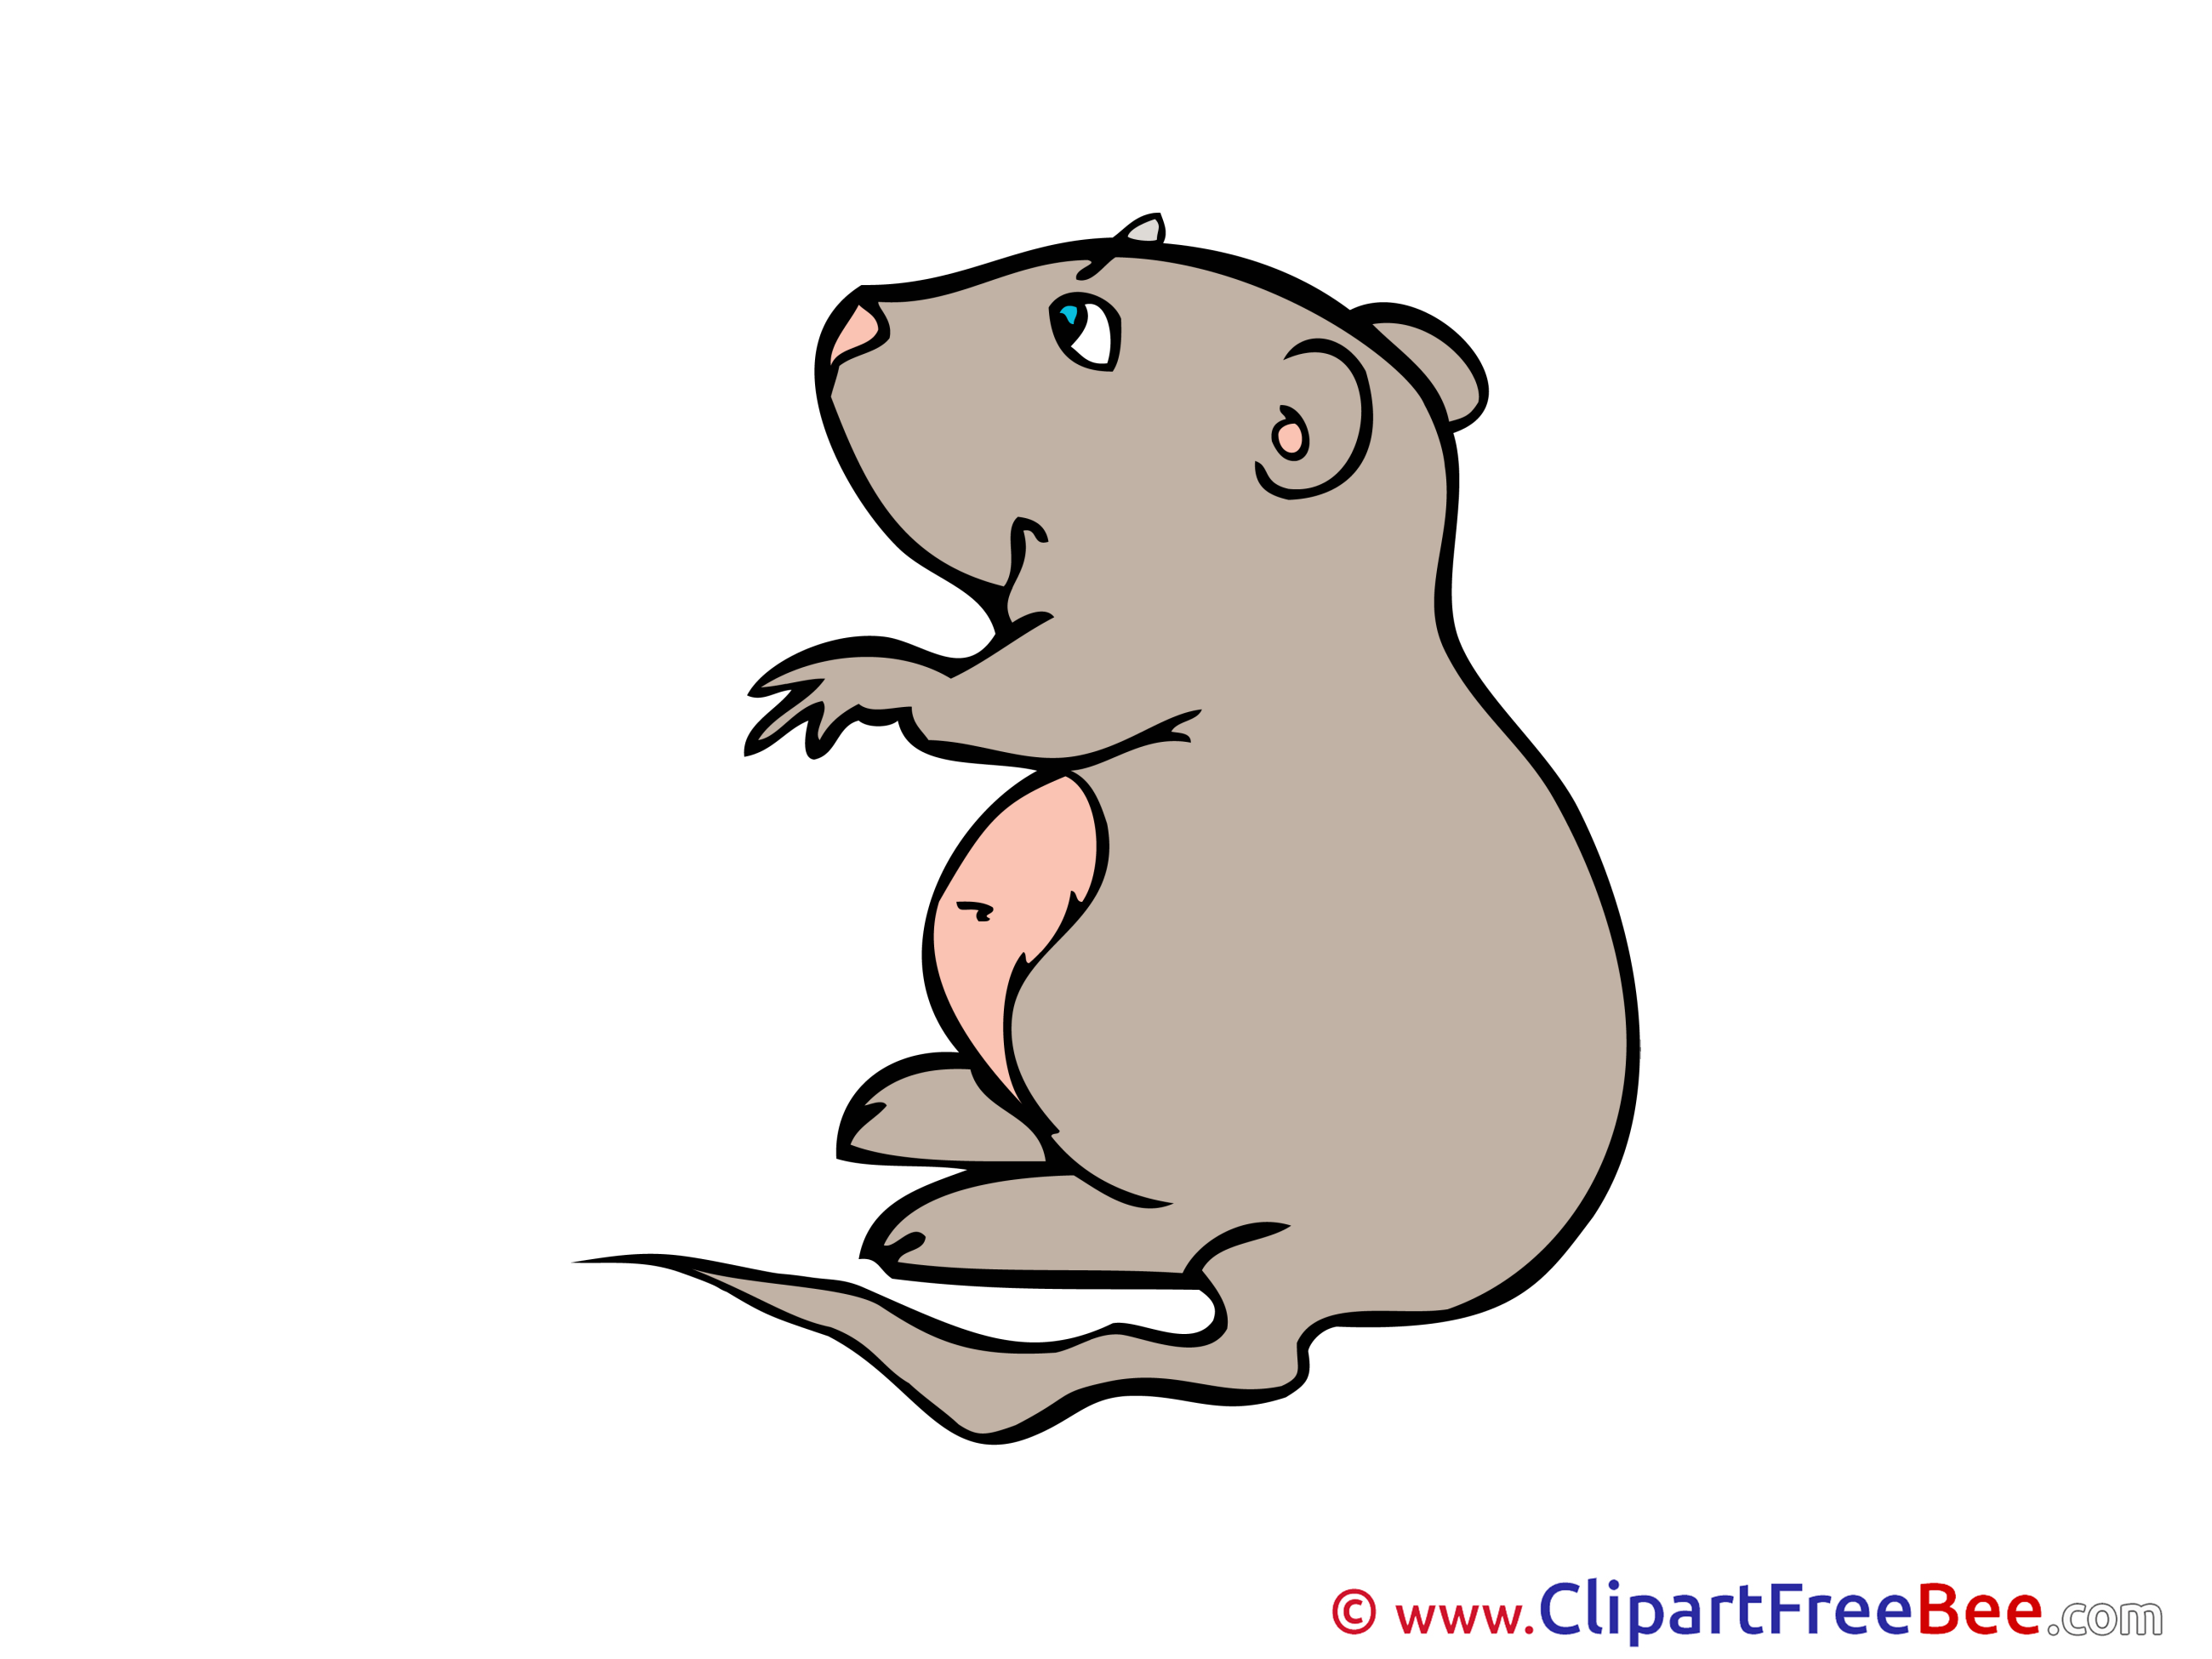 Hamster free printable Cliparts and Images